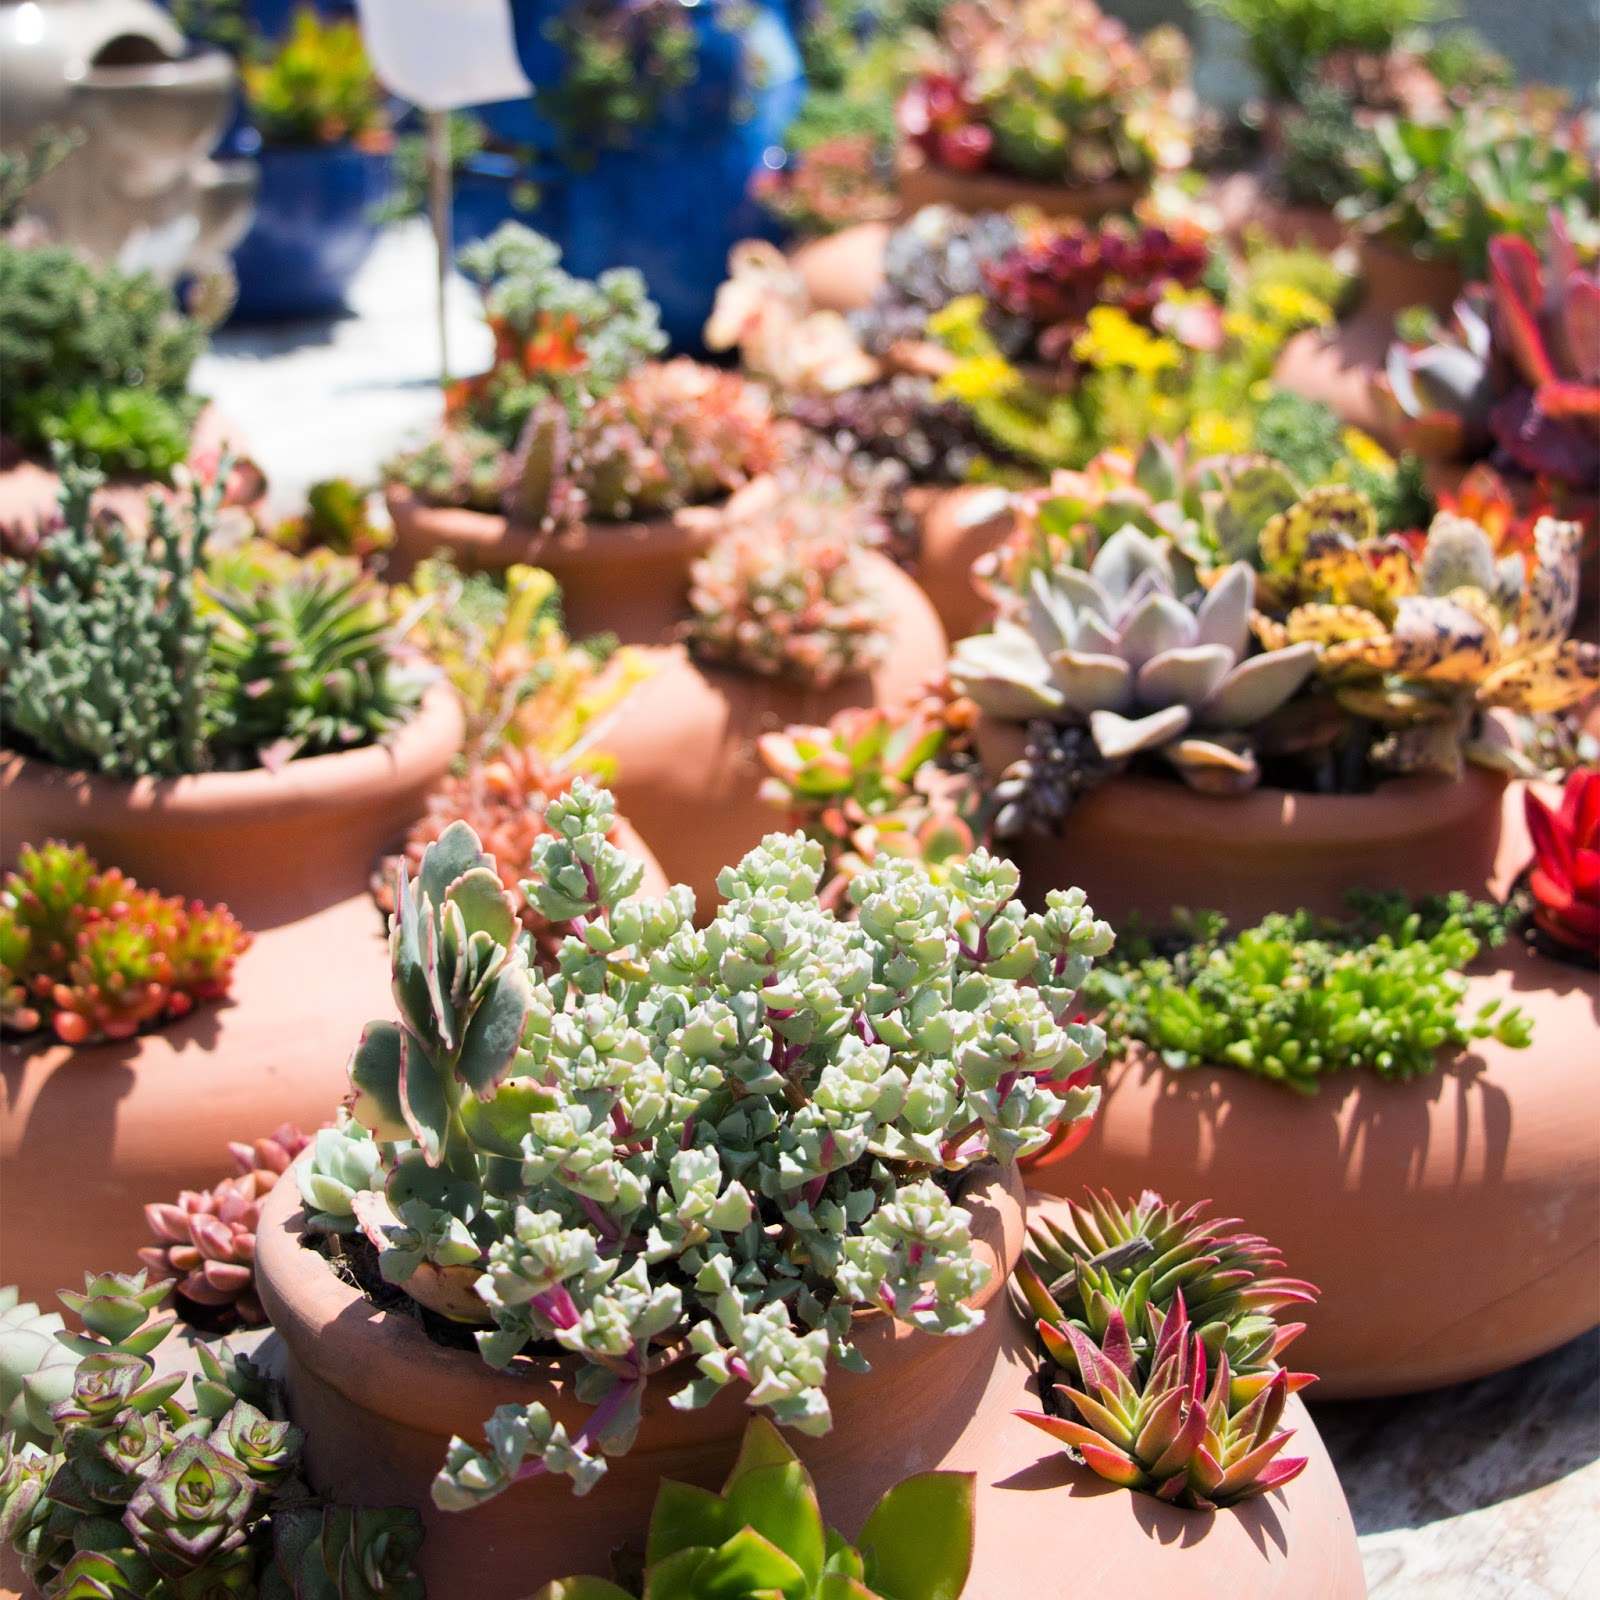 They Have A Huge Variety Of Succulentost Them You Can Get For 2 5 I Really Loved Some Their Arrangements Cosentino S Nursery Malibu